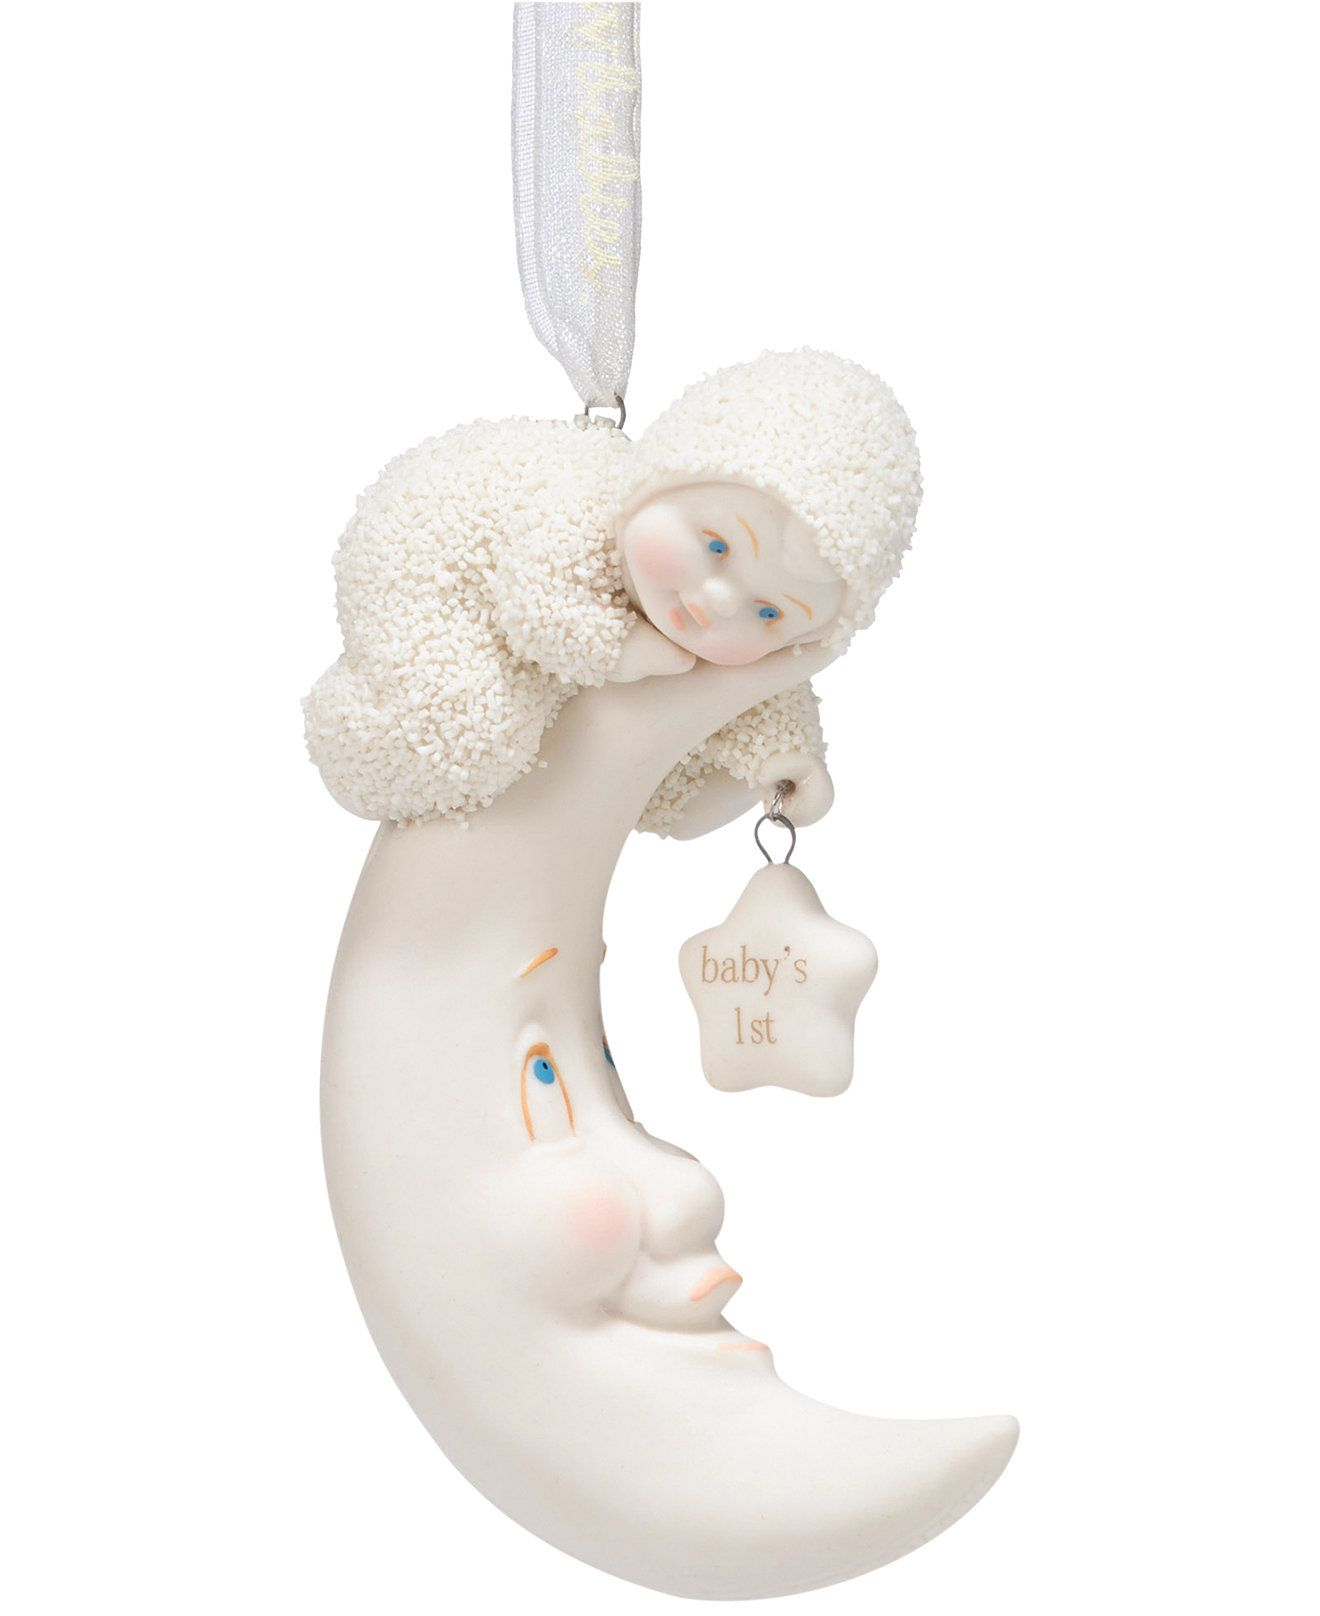 Department 56 snowbabies ornaments - Department 56 Snowbabies Baby S First Ornament Christmas Ornaments Holiday Lane Macy S